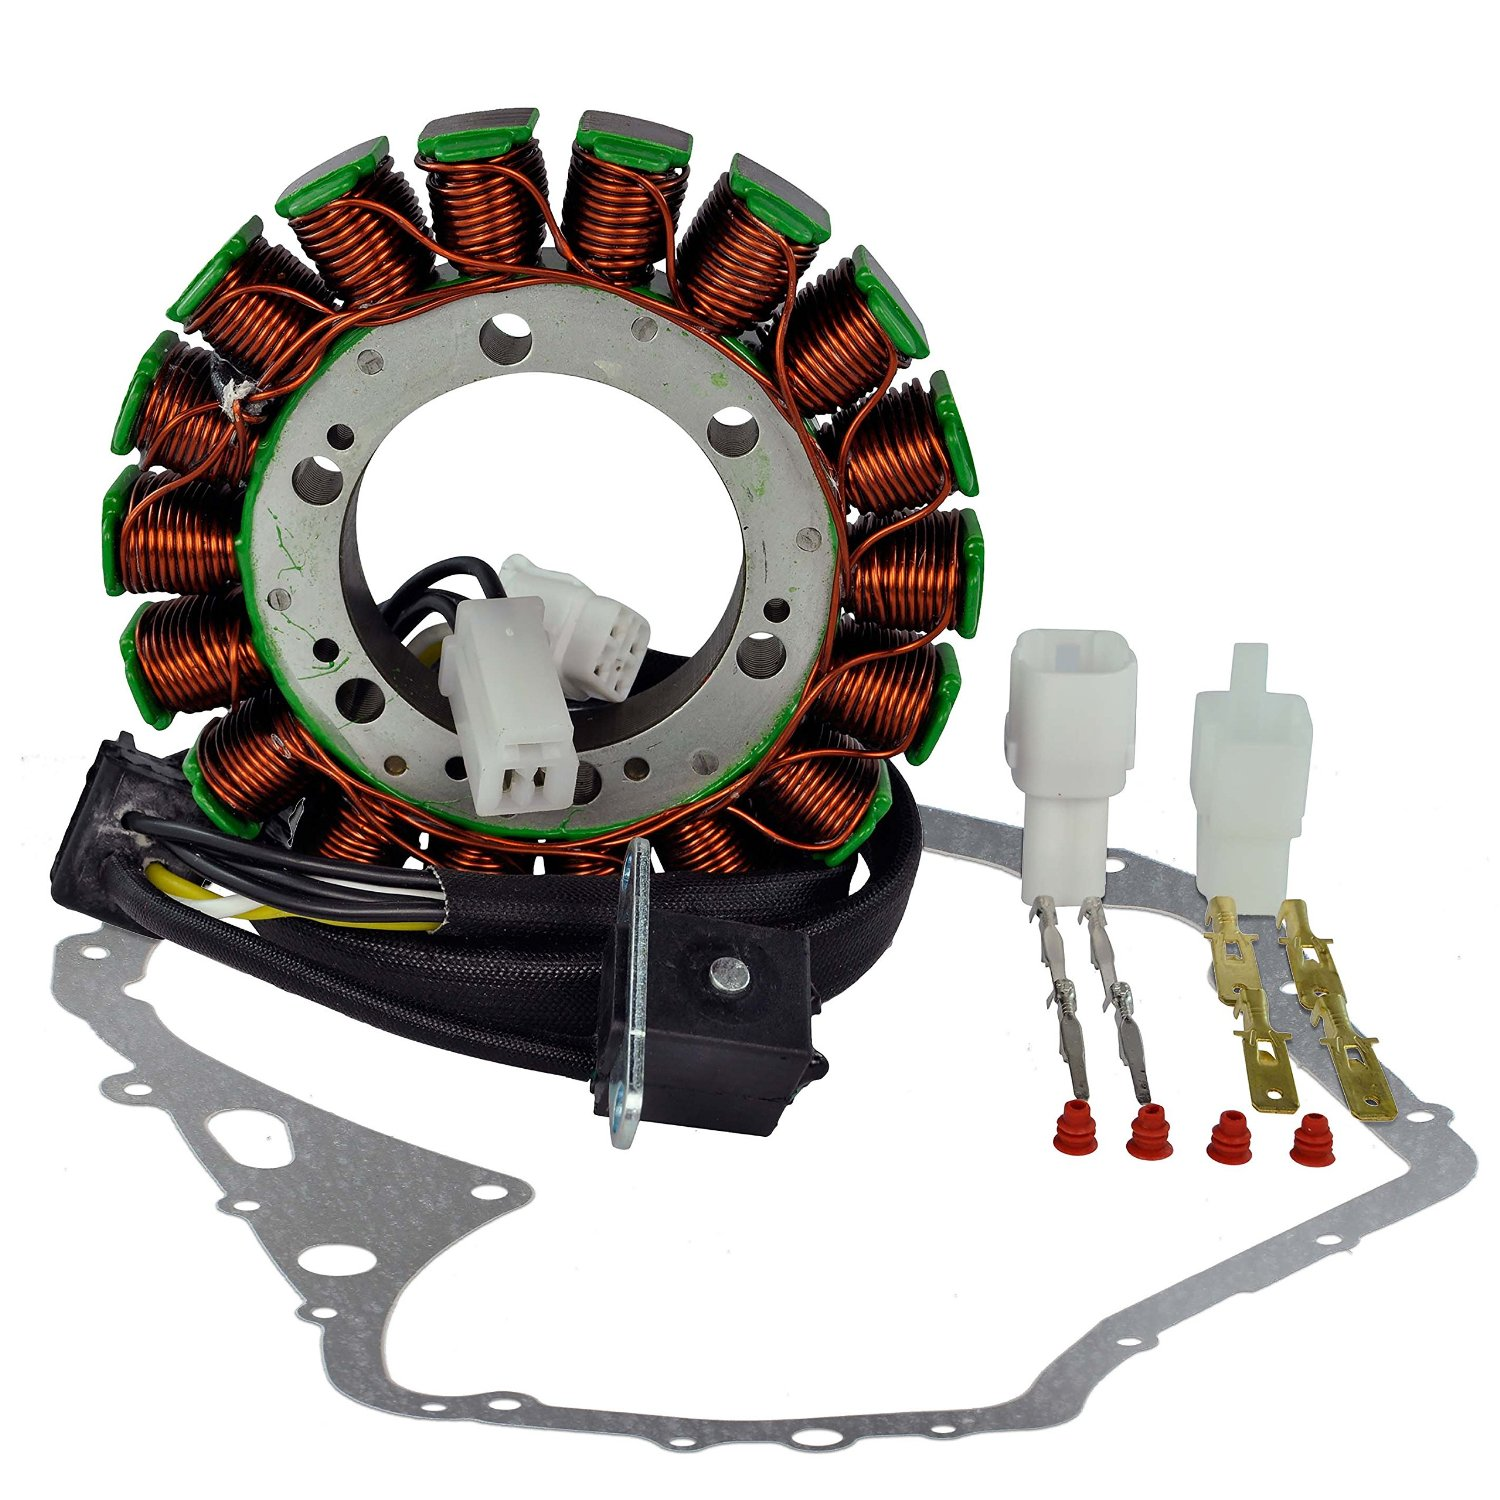 Cheap Arctic King Manual Find Deals On Line At 1998 Cat Jag 440 Wiring Diagram Get Quotations Kit Stator Crankcase Cover Gasket For Suzuki Ltf 400 Eiger